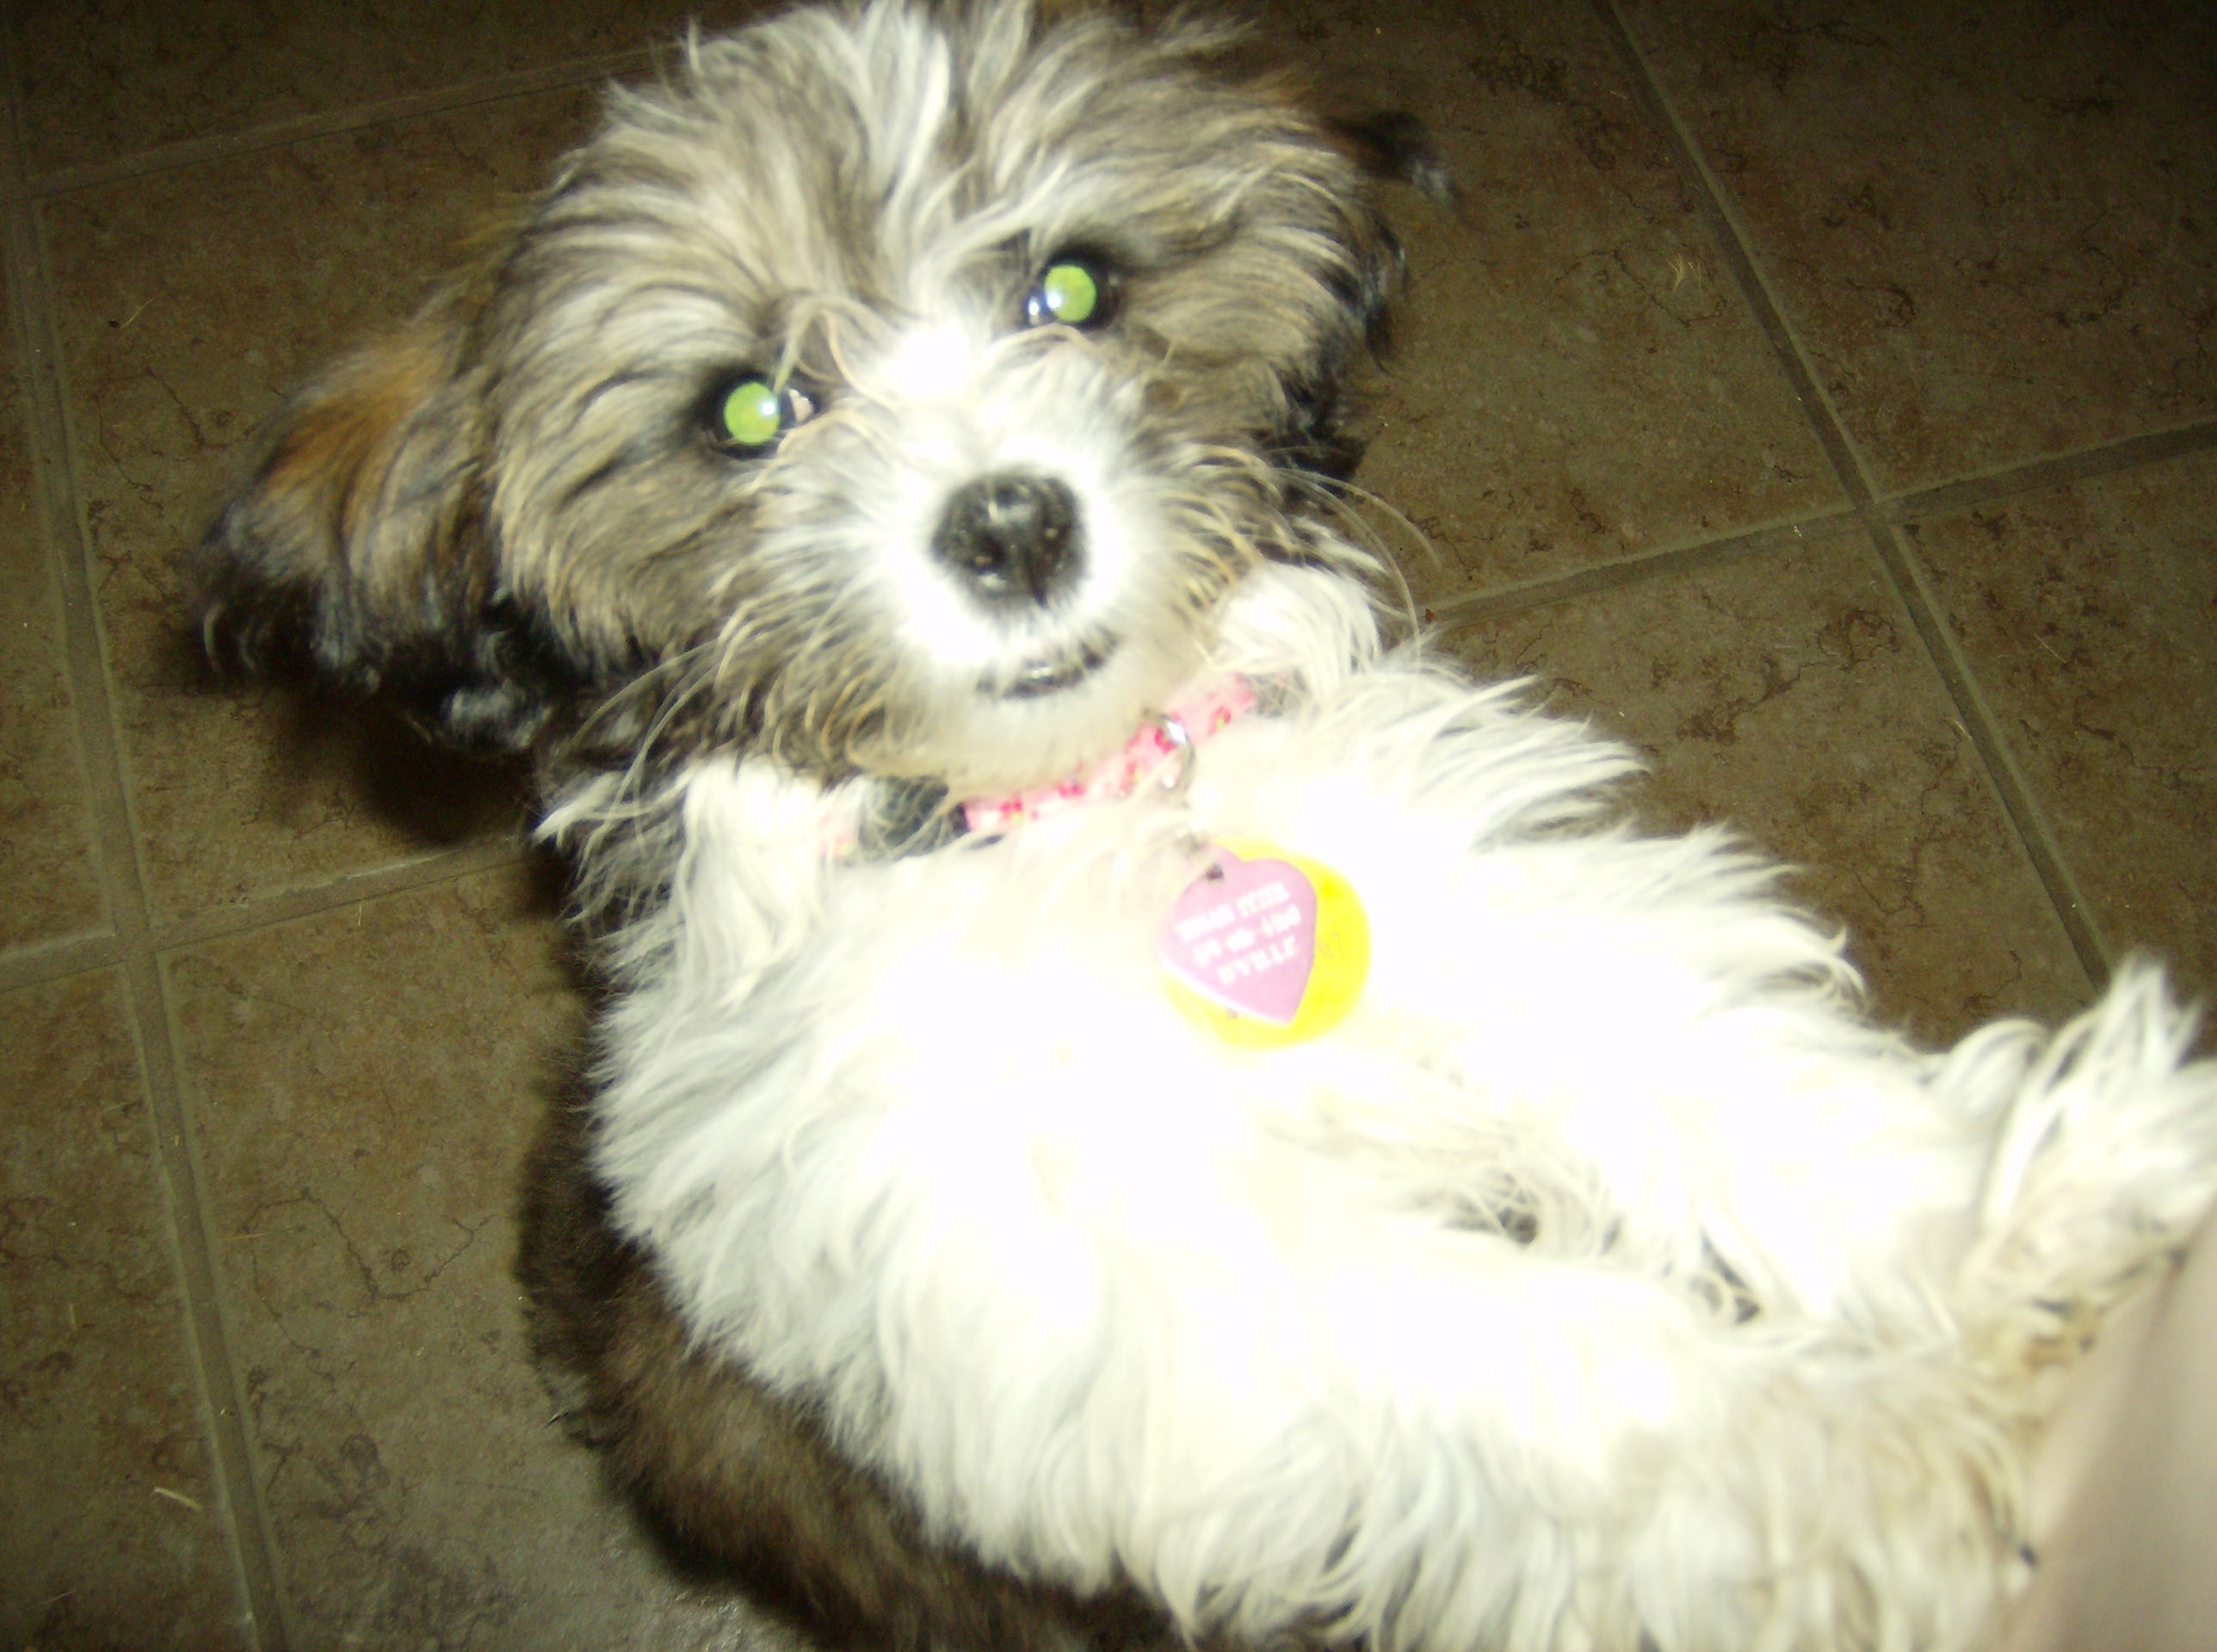 Shichon puppies for sale in kentucky - Shichon Puppies For Sale In Kentucky 50